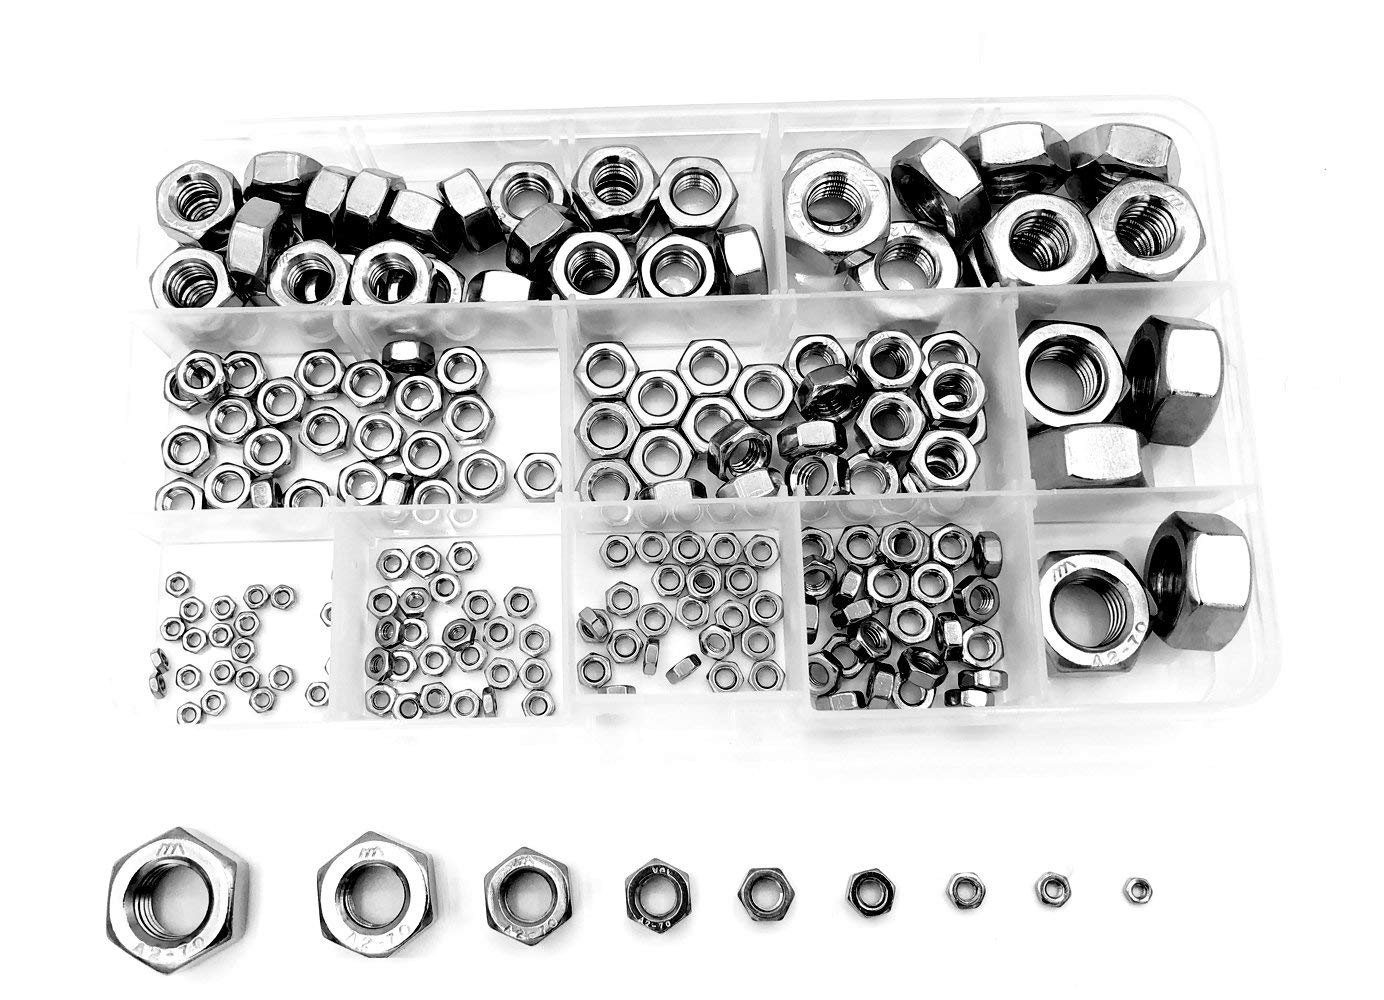 M2 M2.5 M3 M4 M5 M6 M8 M10 M12 304 Stainless Steel Hex Nuts Assortment Kit 190Pcs